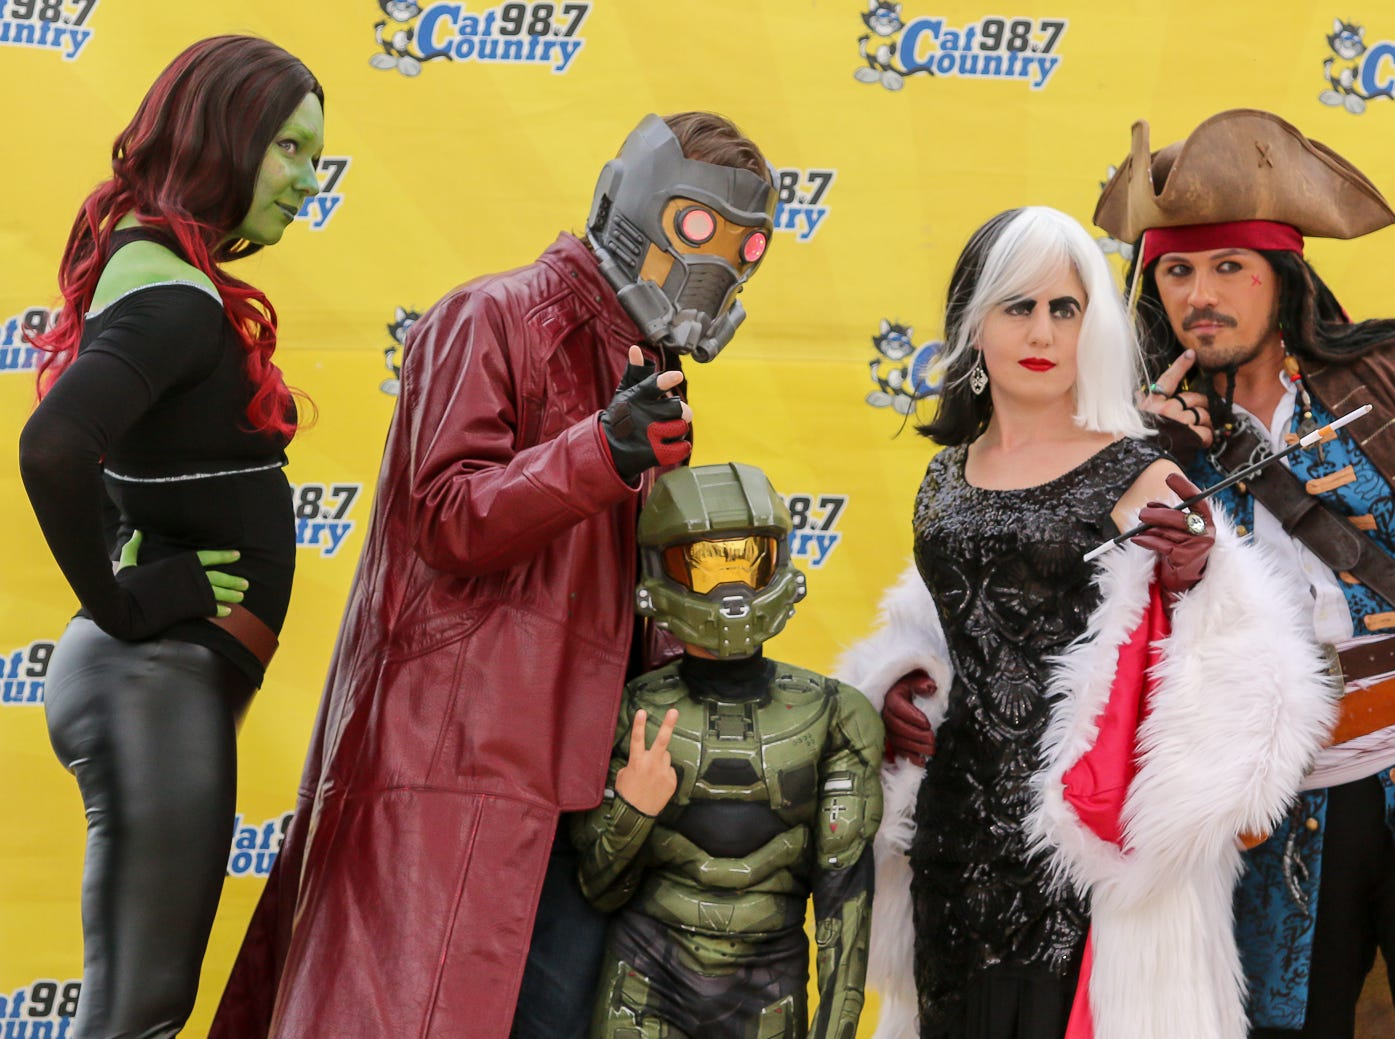 People have their picture taken with Pensacon cosplayers during the 84th annual Pensacola Interstate Fair on Monday, October 22, 2018.